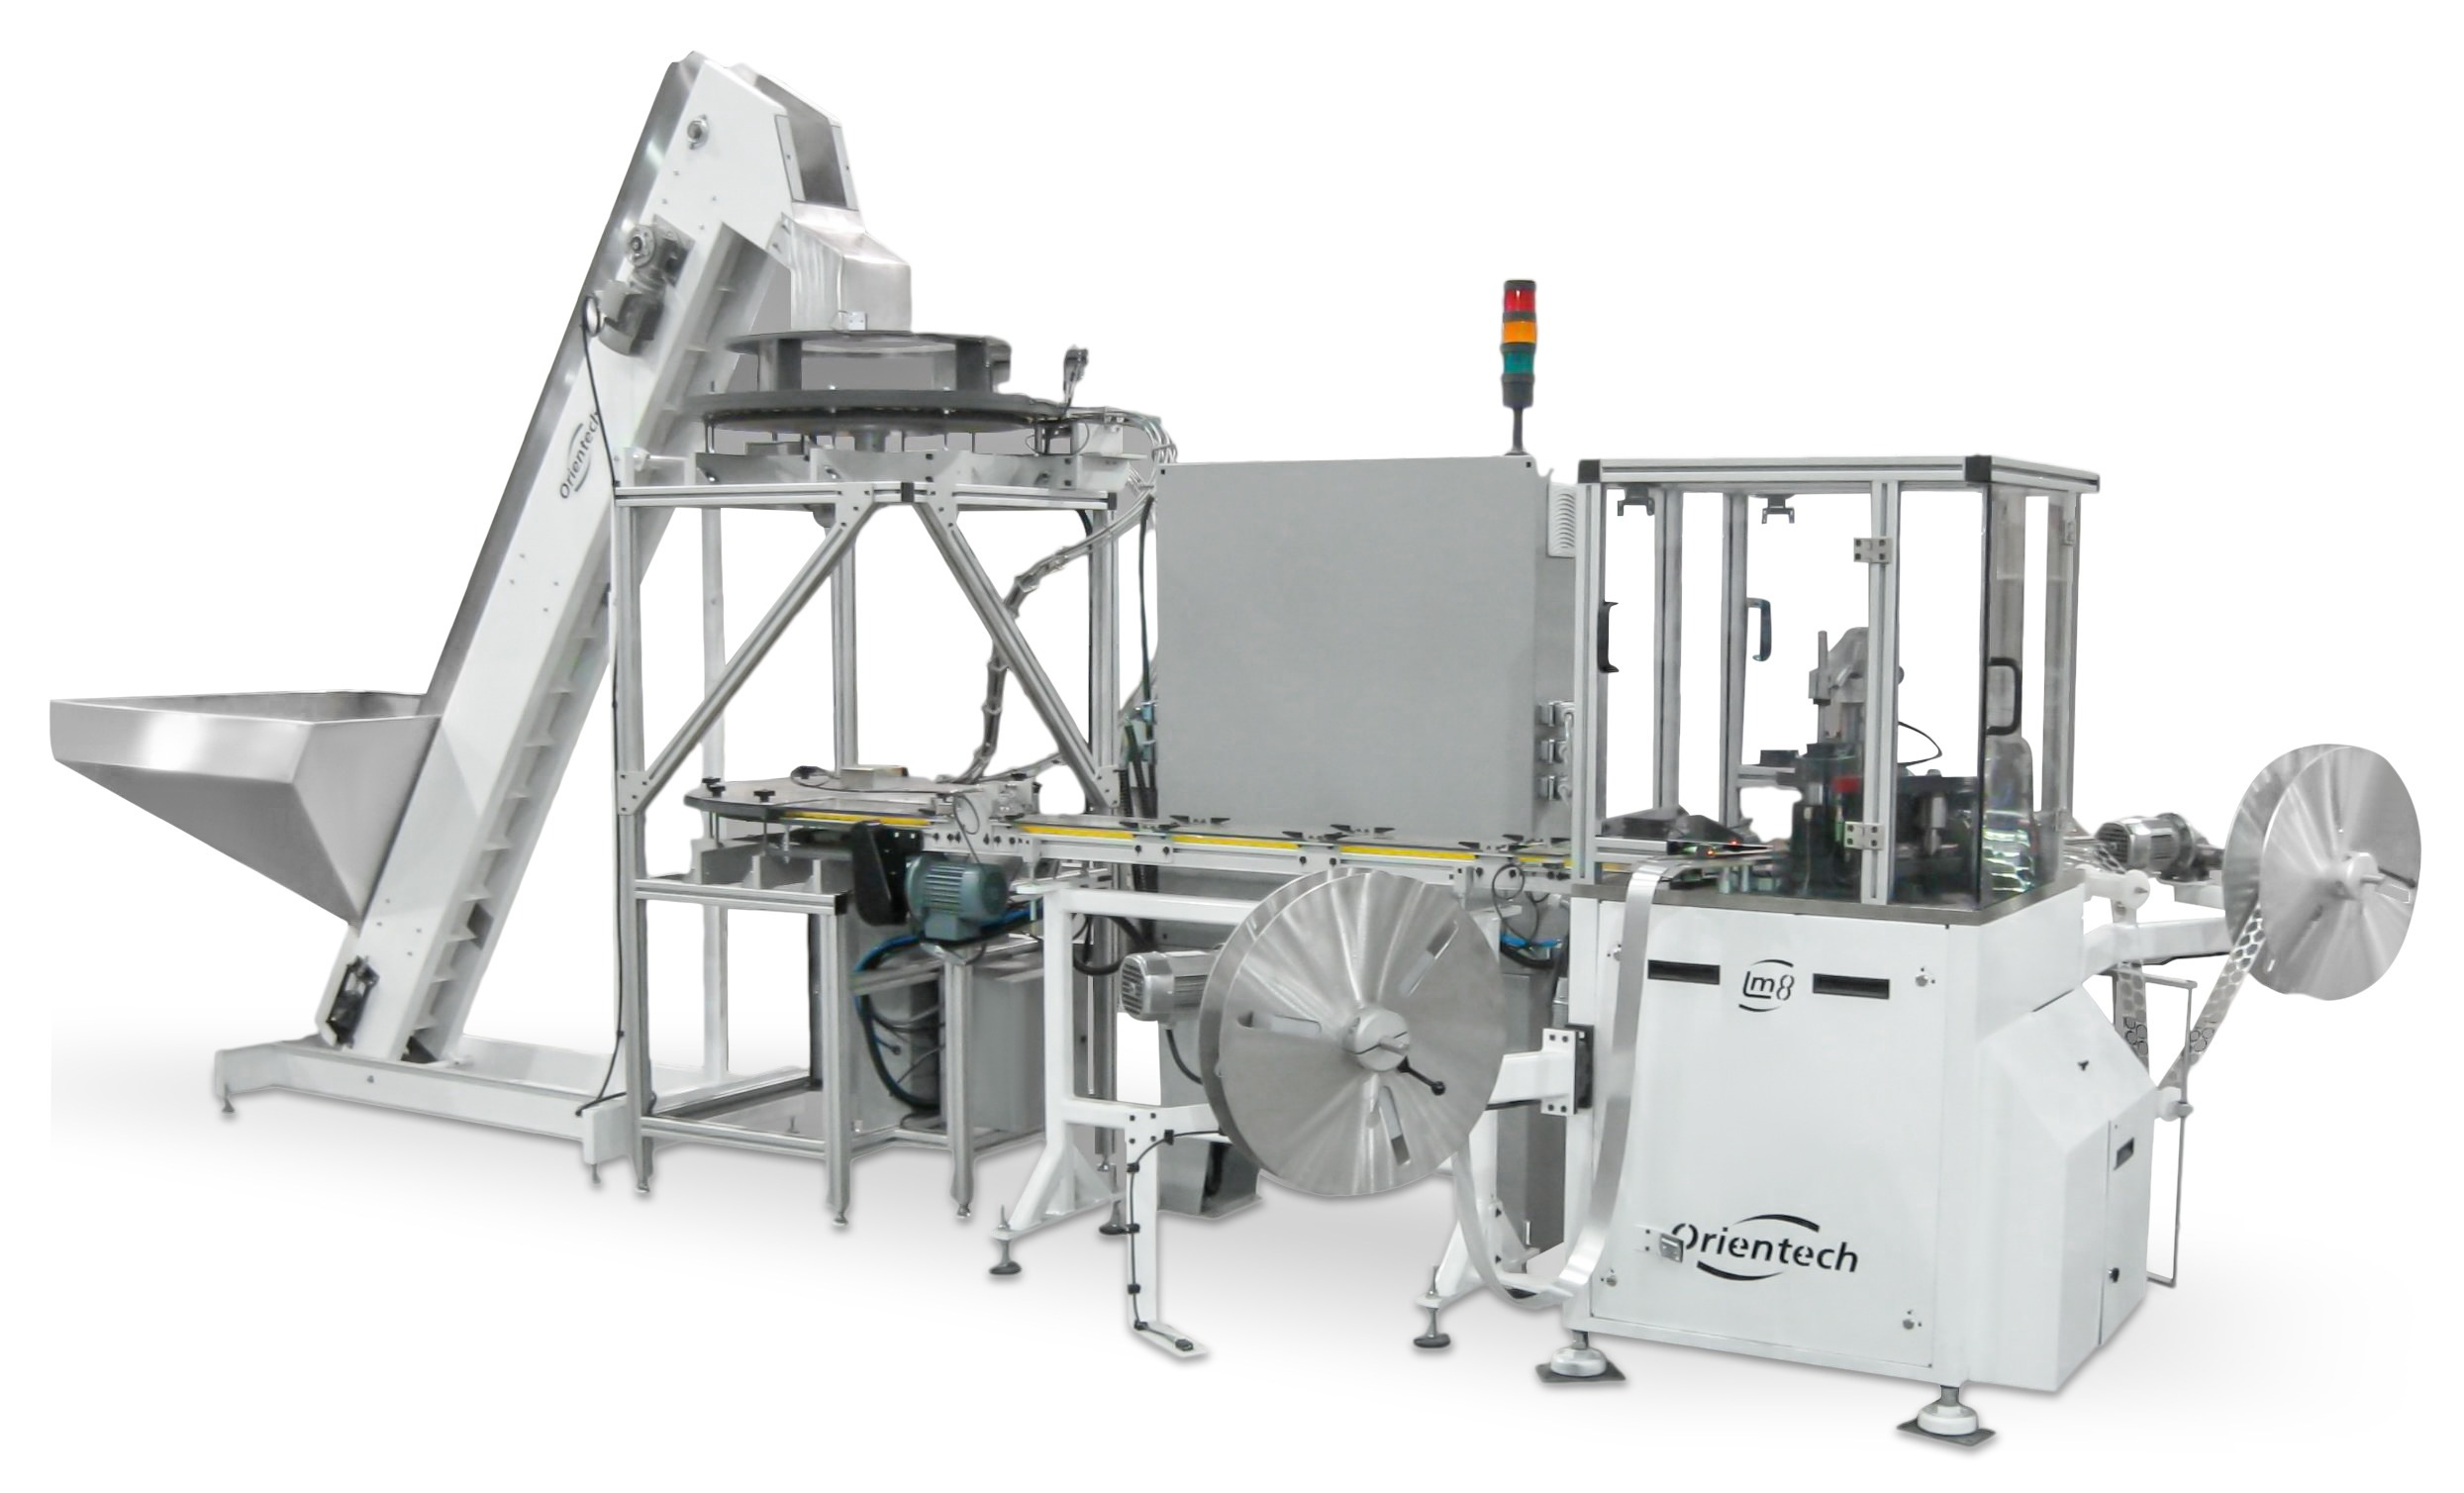 Orientech lining machine